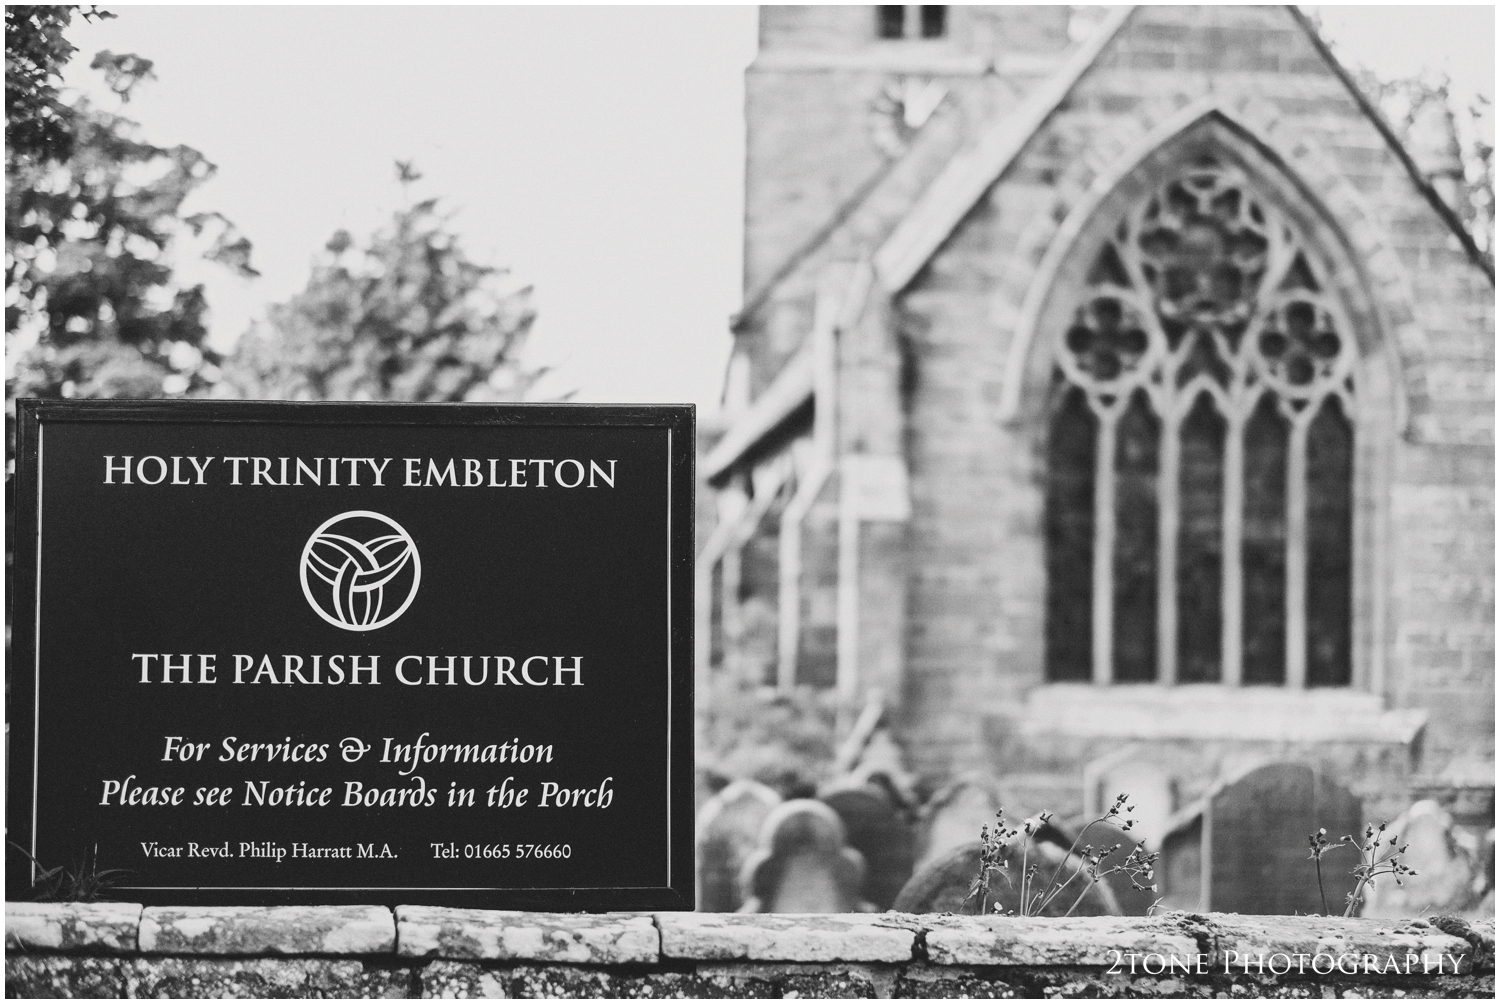 The wedding took place at the charming Holy Trinity Church in Embleton village.